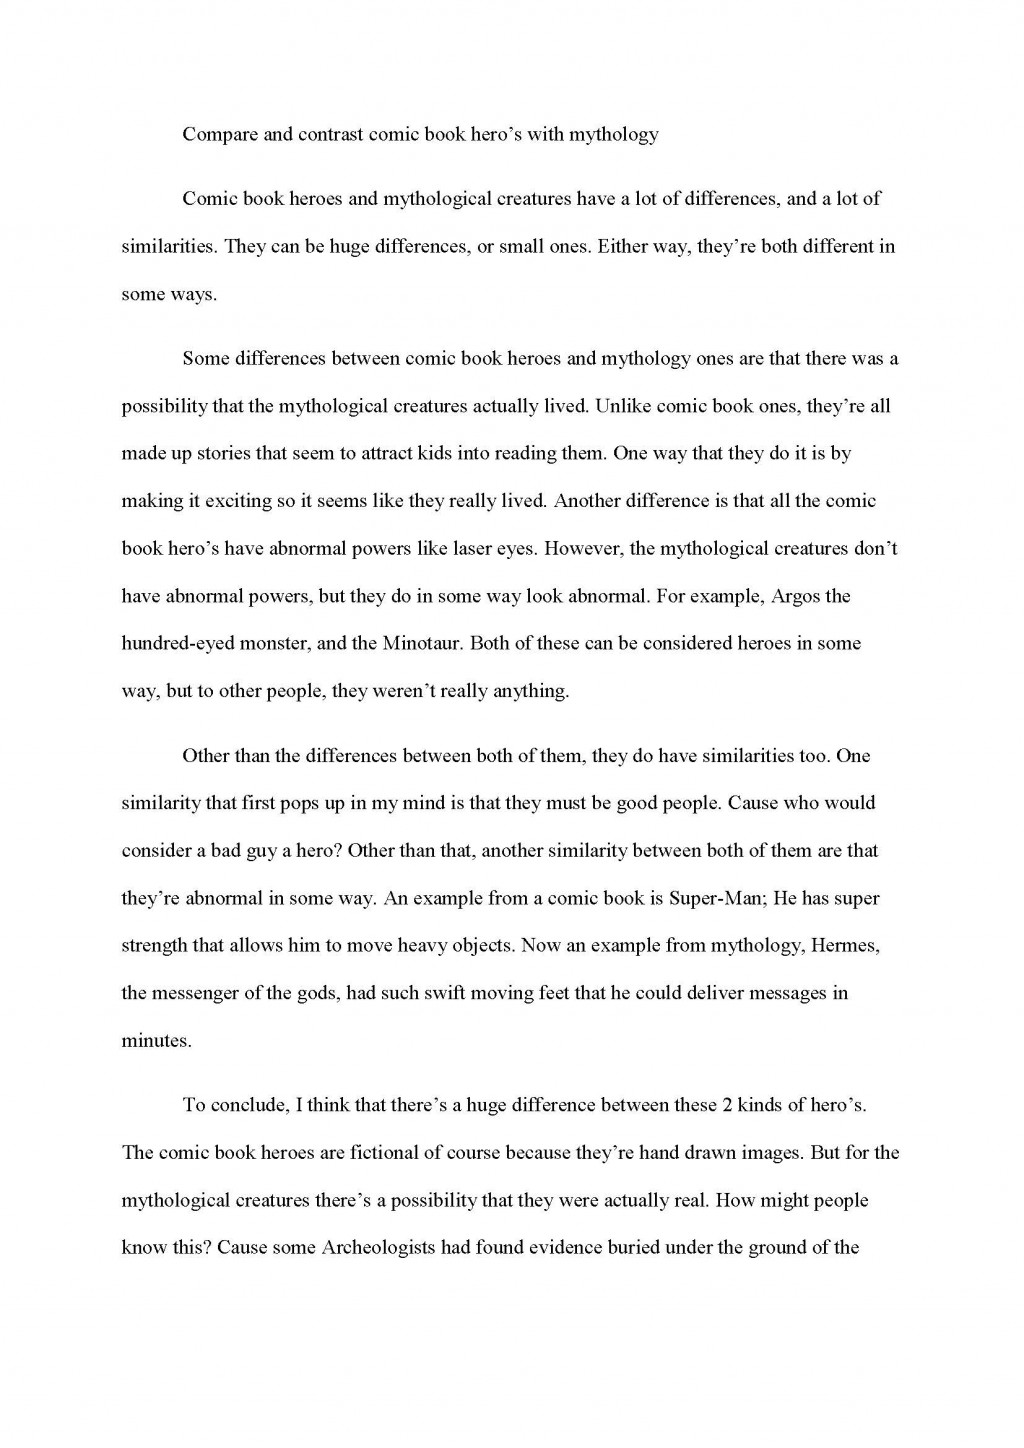 002 Essay Example Comparison And Contrast Examples Compare Frightening Point-by-point Toefl Pdf Large